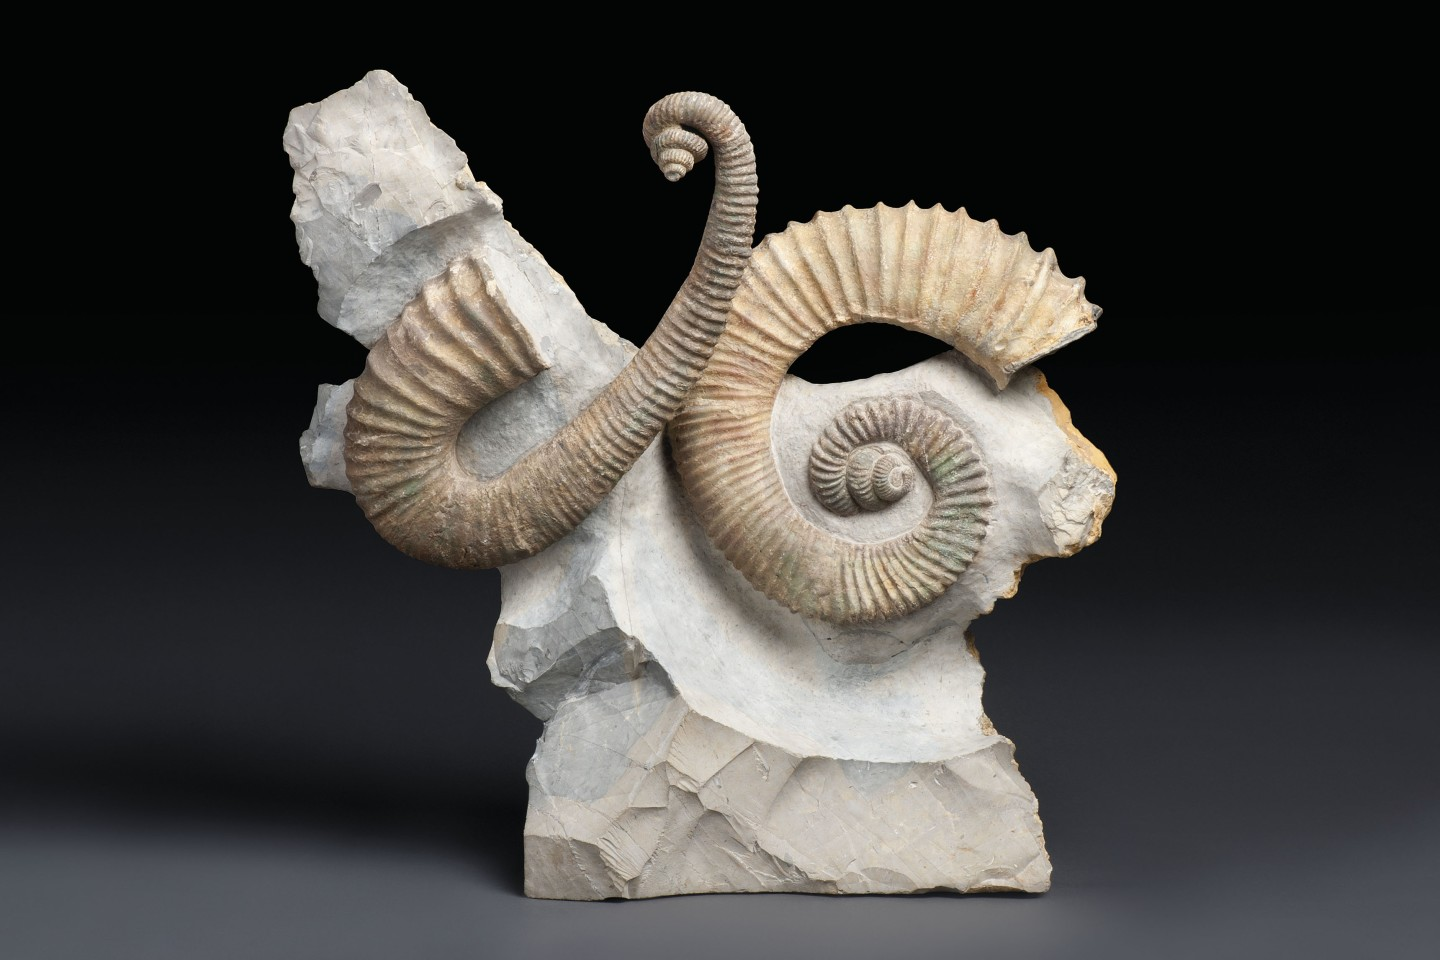 This 21 x 20 x 7 inch (54 x 51 x 18 cm) natural sculpture is from the Barremian Early Cretaceous (129.4 to 125.0 million years ago) period and contains two uncoiled Heteromorph Ammonites (Heteroceras emerici) prepped in original positions in matrix, which is cut flat to base.